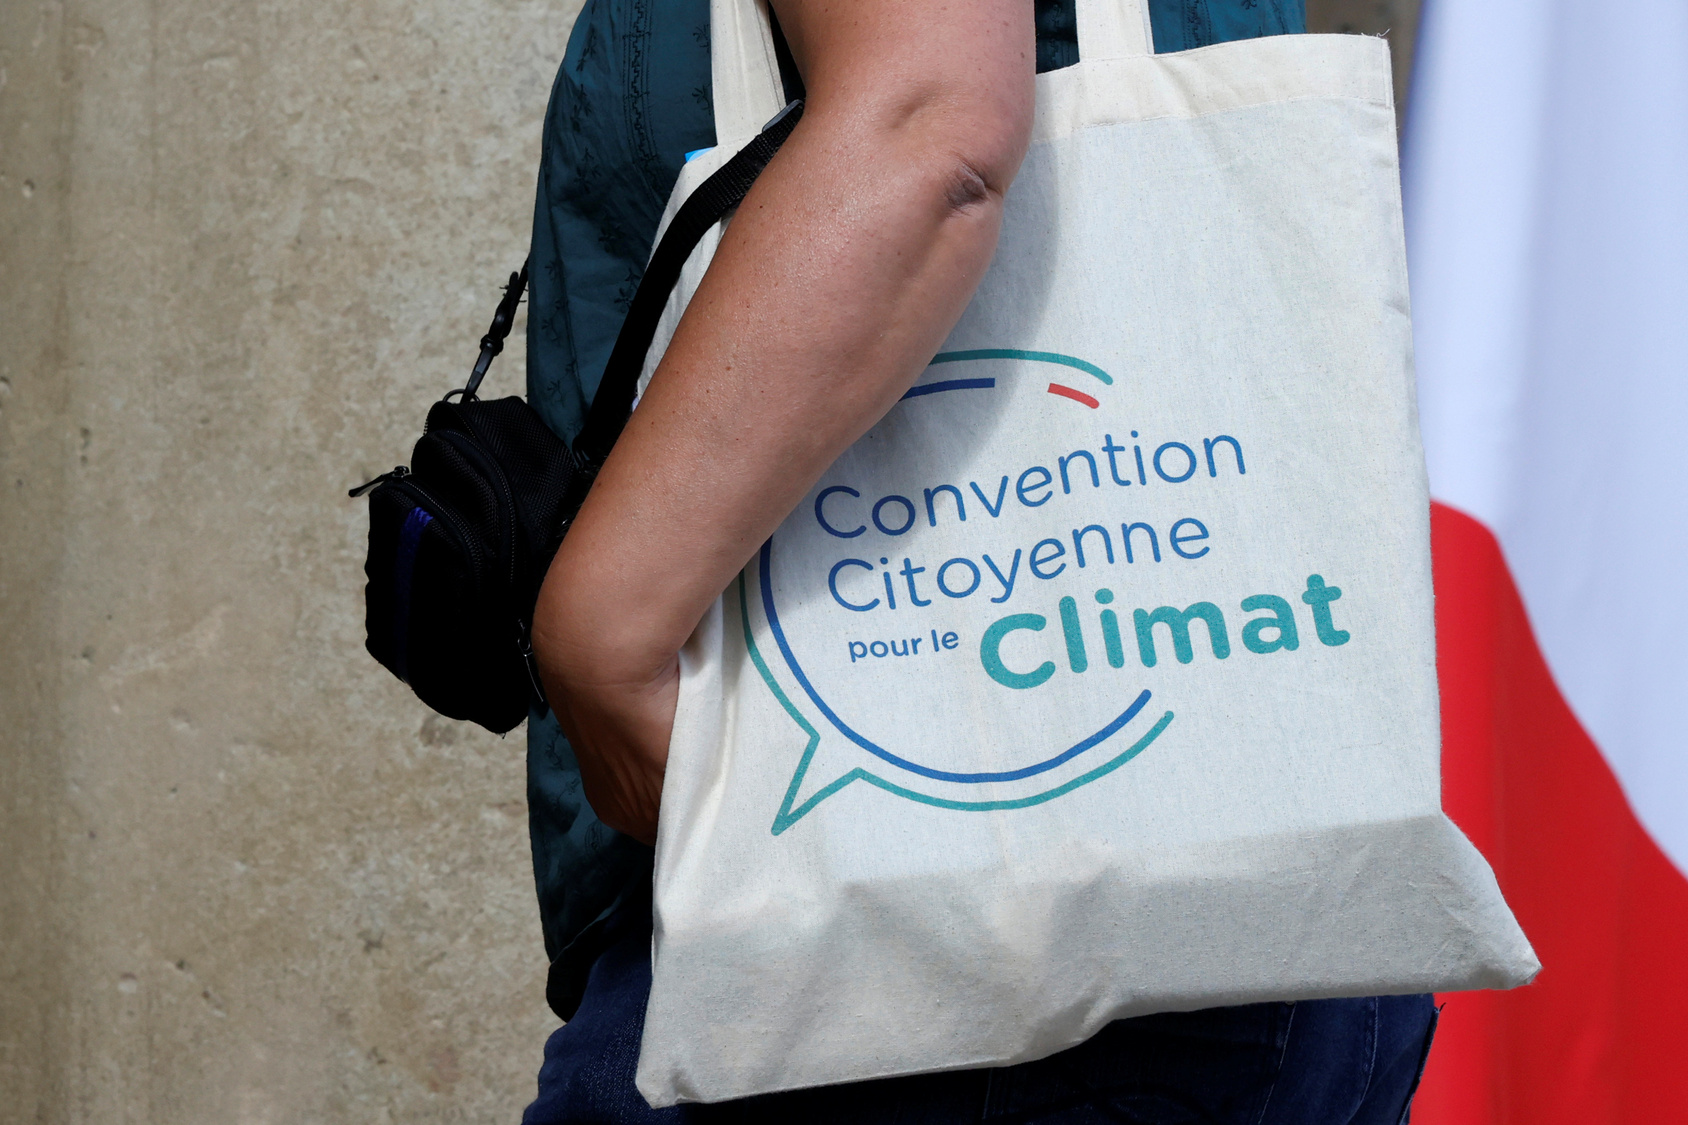 A member of the Citizens' Convention on Climate (CCC) arrives at the Elysee Palace in Paris